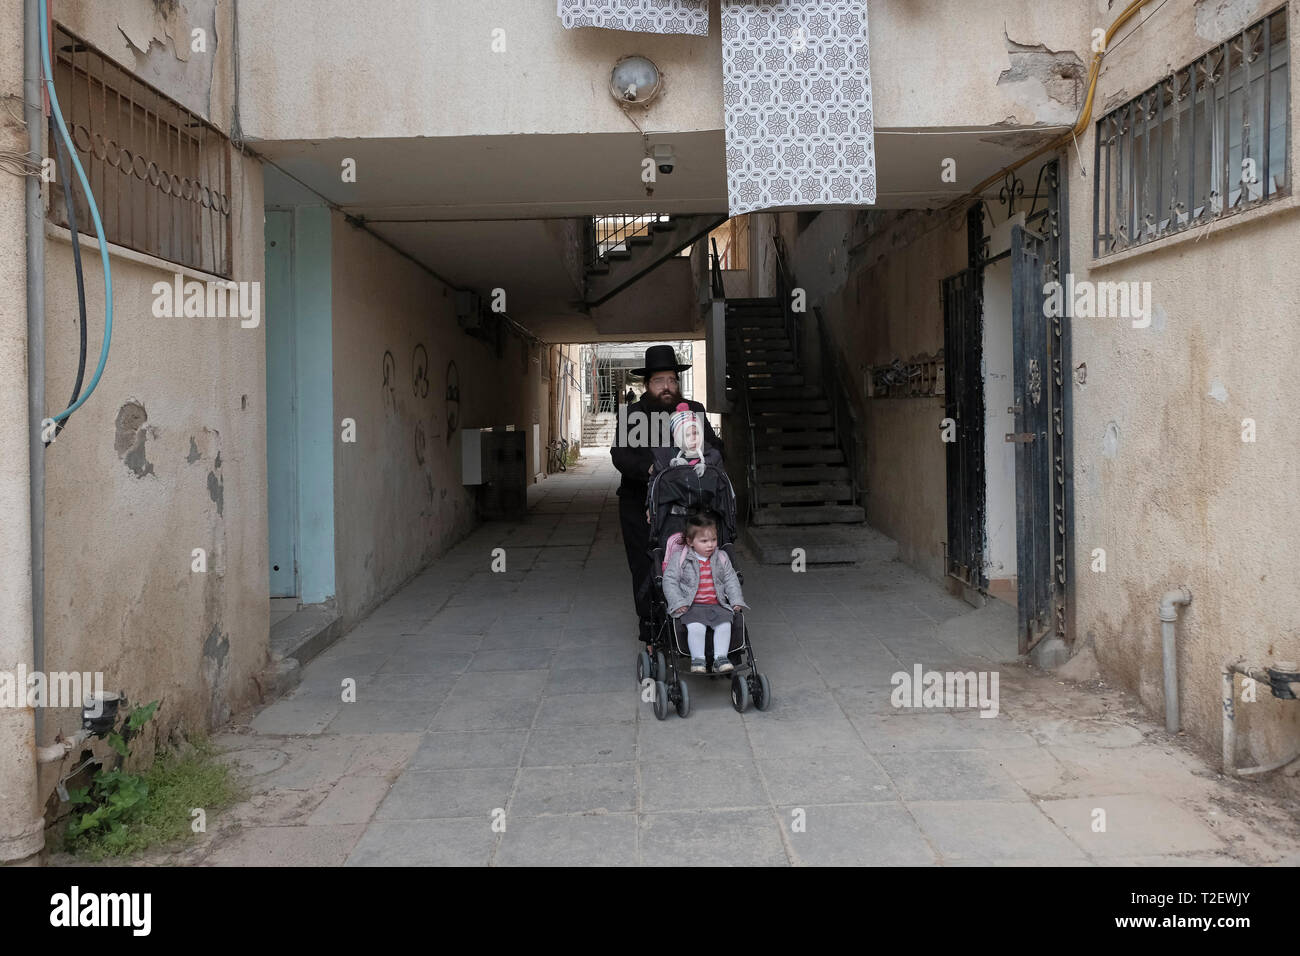 An ultra orthodox Jew walking in Shechunat Yeelim (the ibex neighborhood) in Arad a city in the Southern District of Israel. Gur hasidim and secular Jews in Arad have been at loggerheads for years. Secular residents accuse Gur hasidim of attempting to take over the city and harm their way of life, while the local Gur population contend that the city is refusing to provide them with basic municipal services. Stock Photo